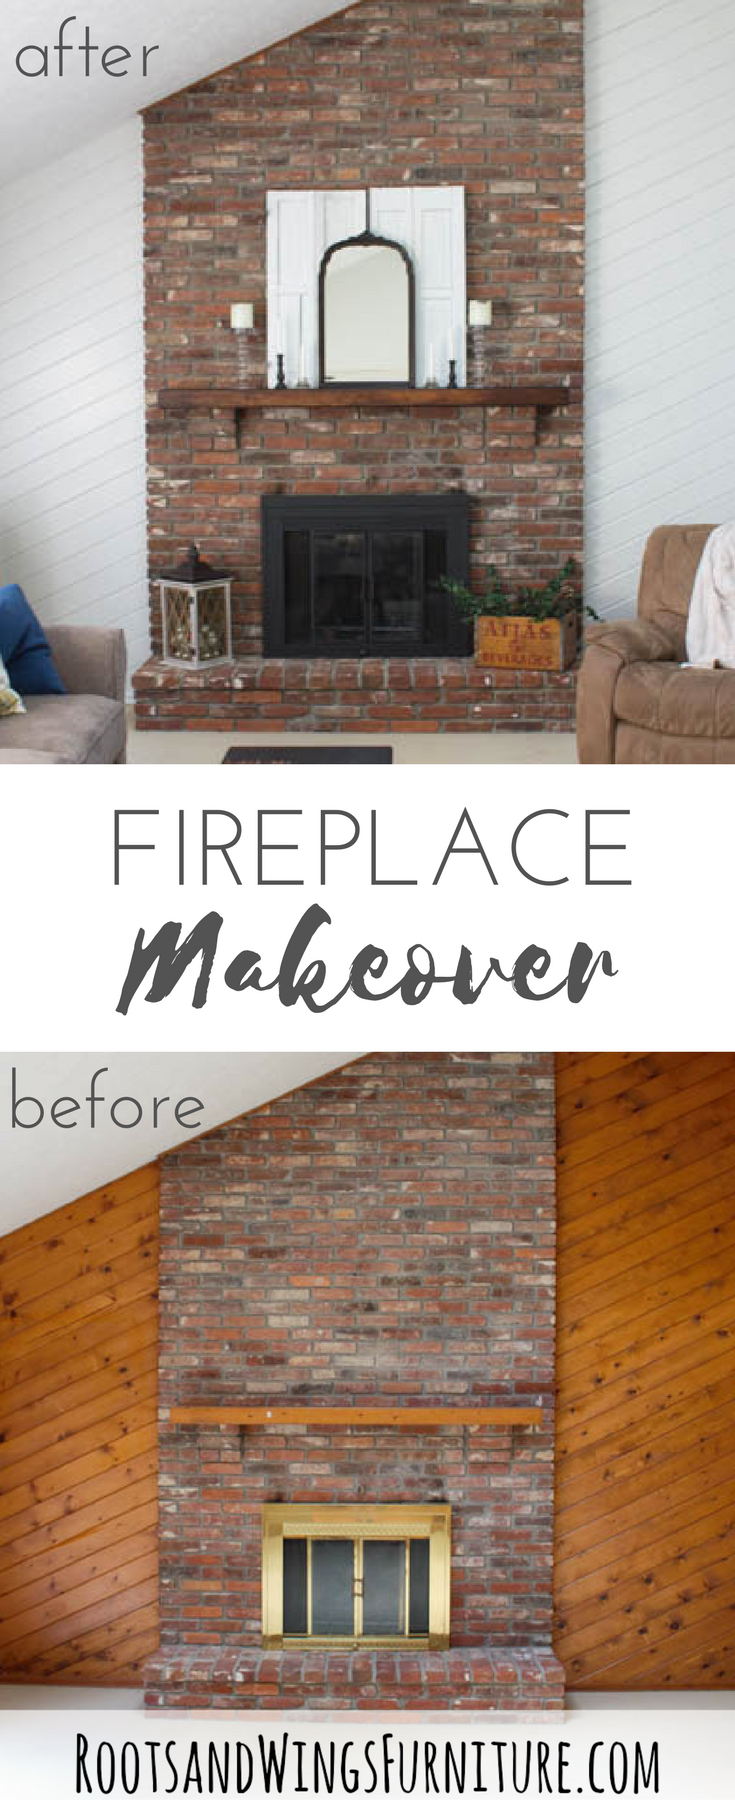 Fireplace Makeover by Roots and Wings Furniture.png